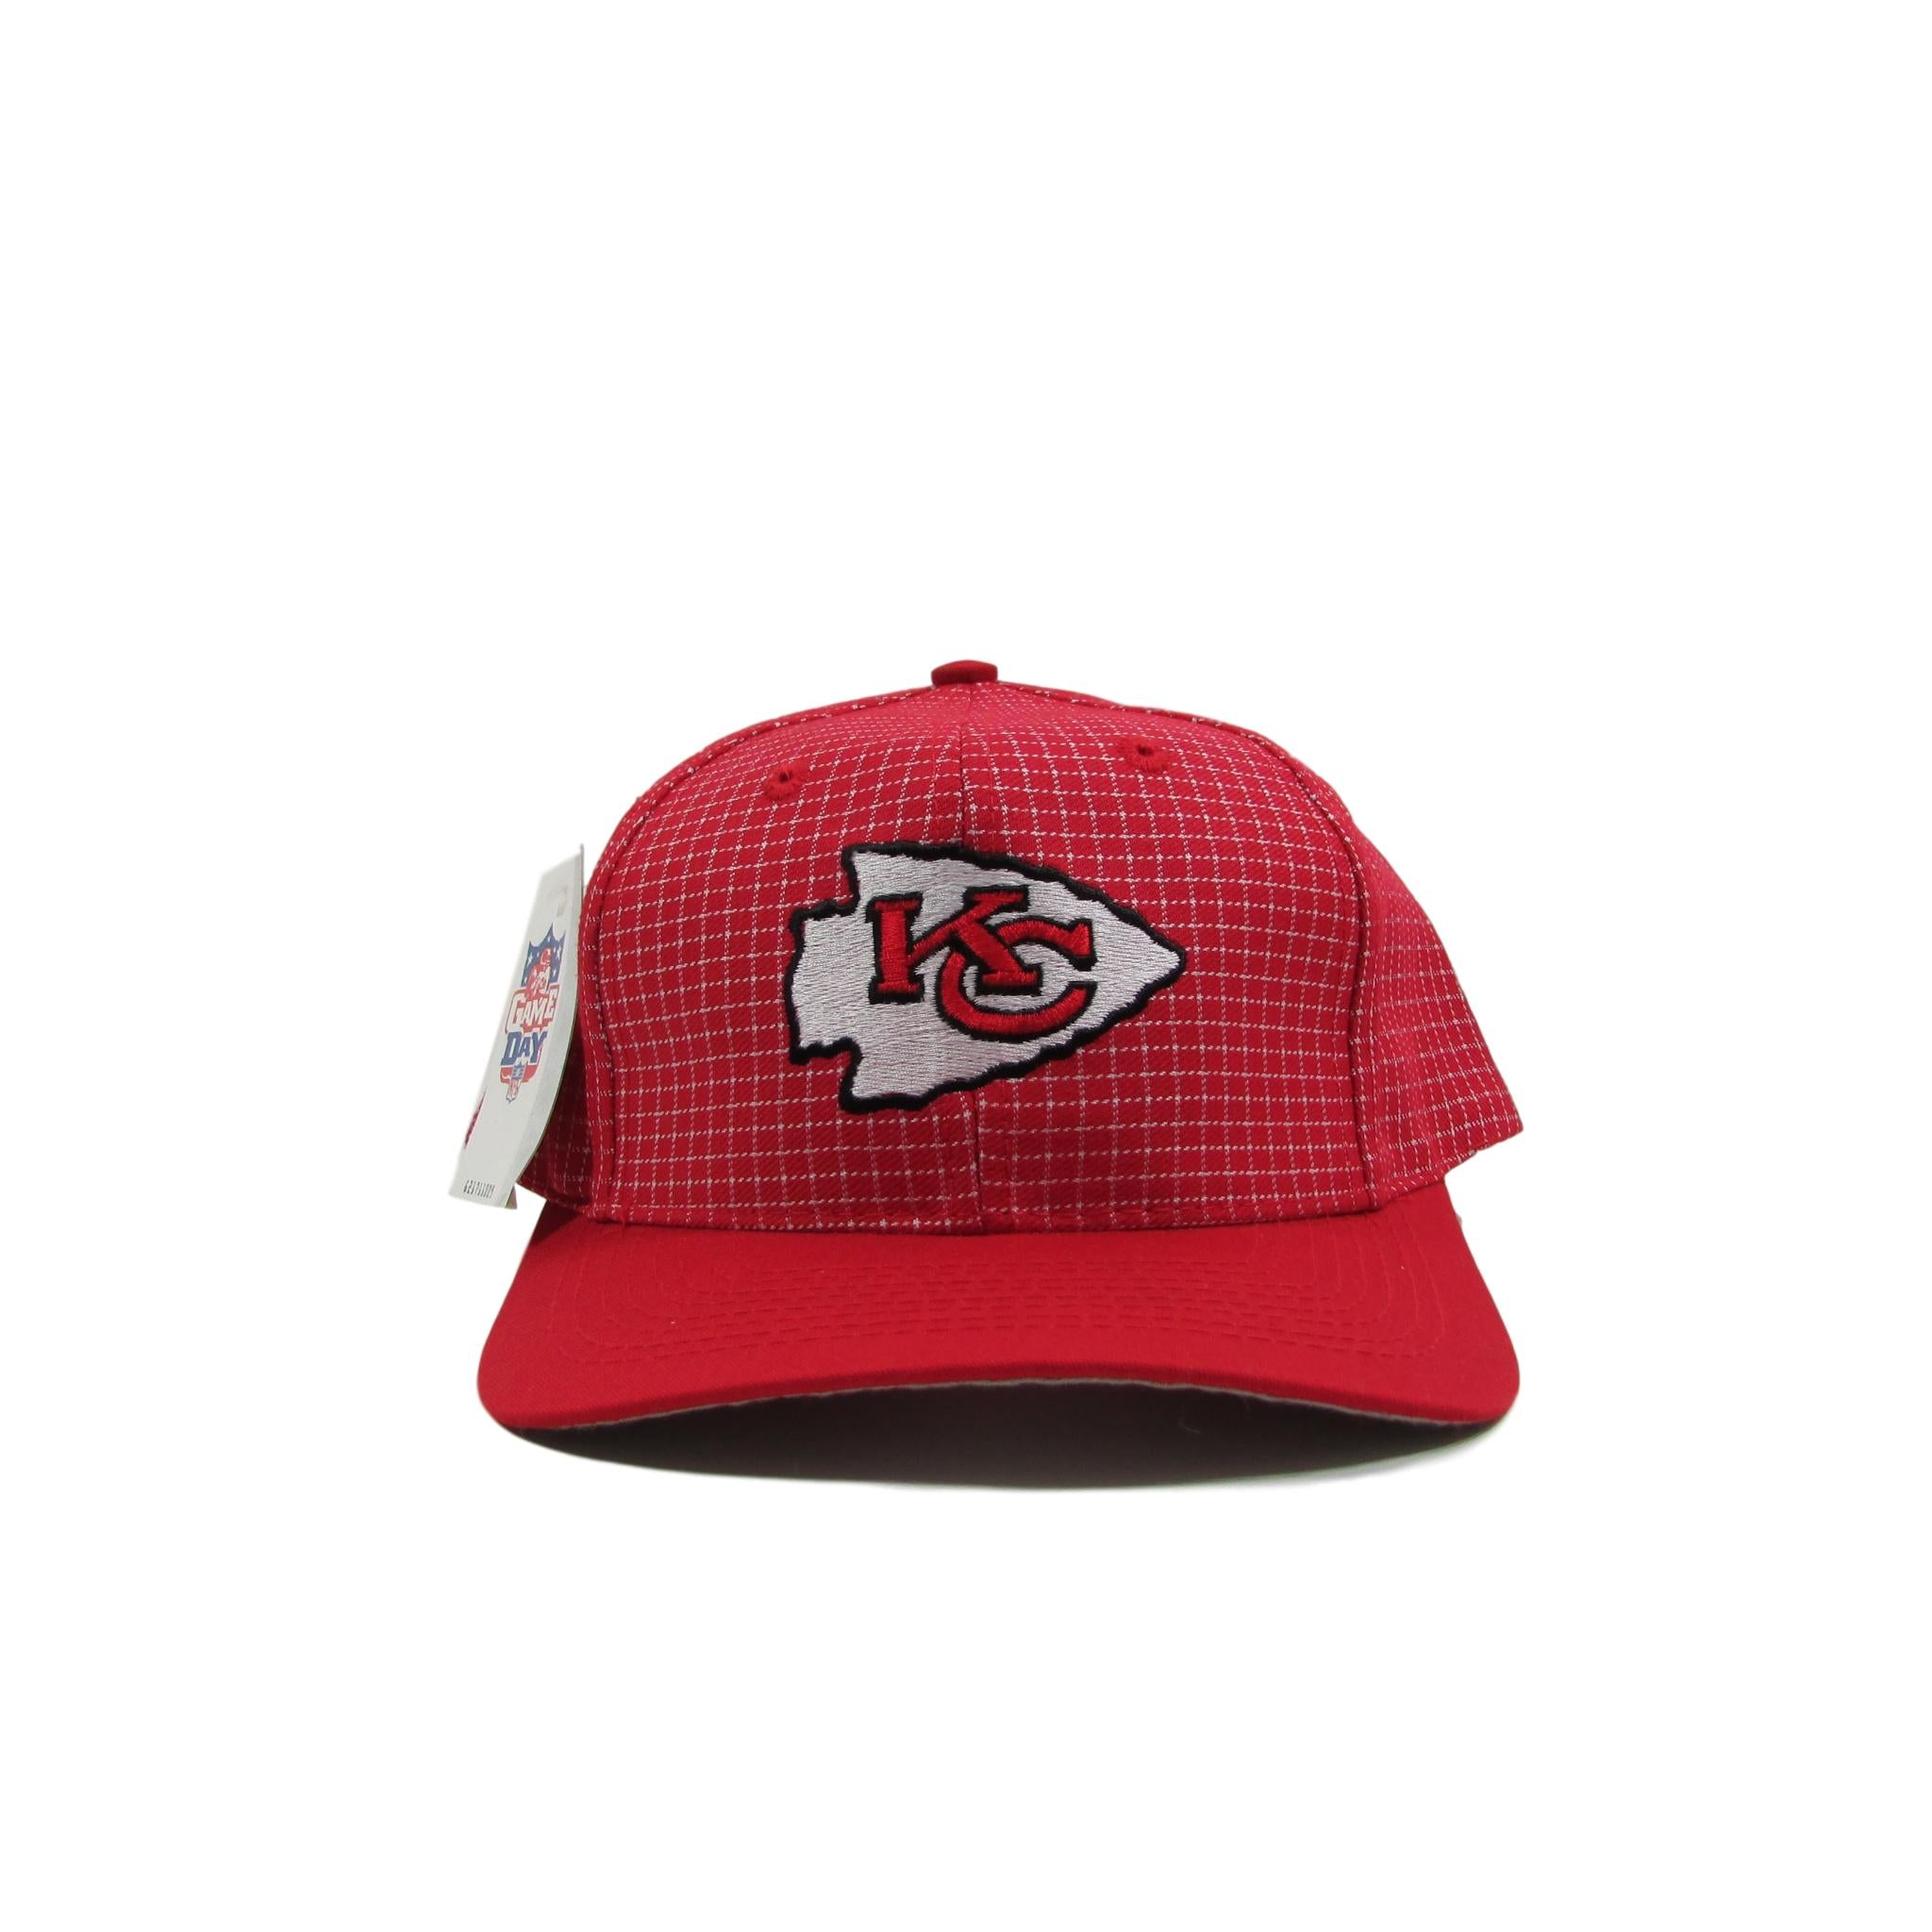 Kansas City Chiefs Classic Pinstripe NFL Game Day Snapback Hat Deadstock